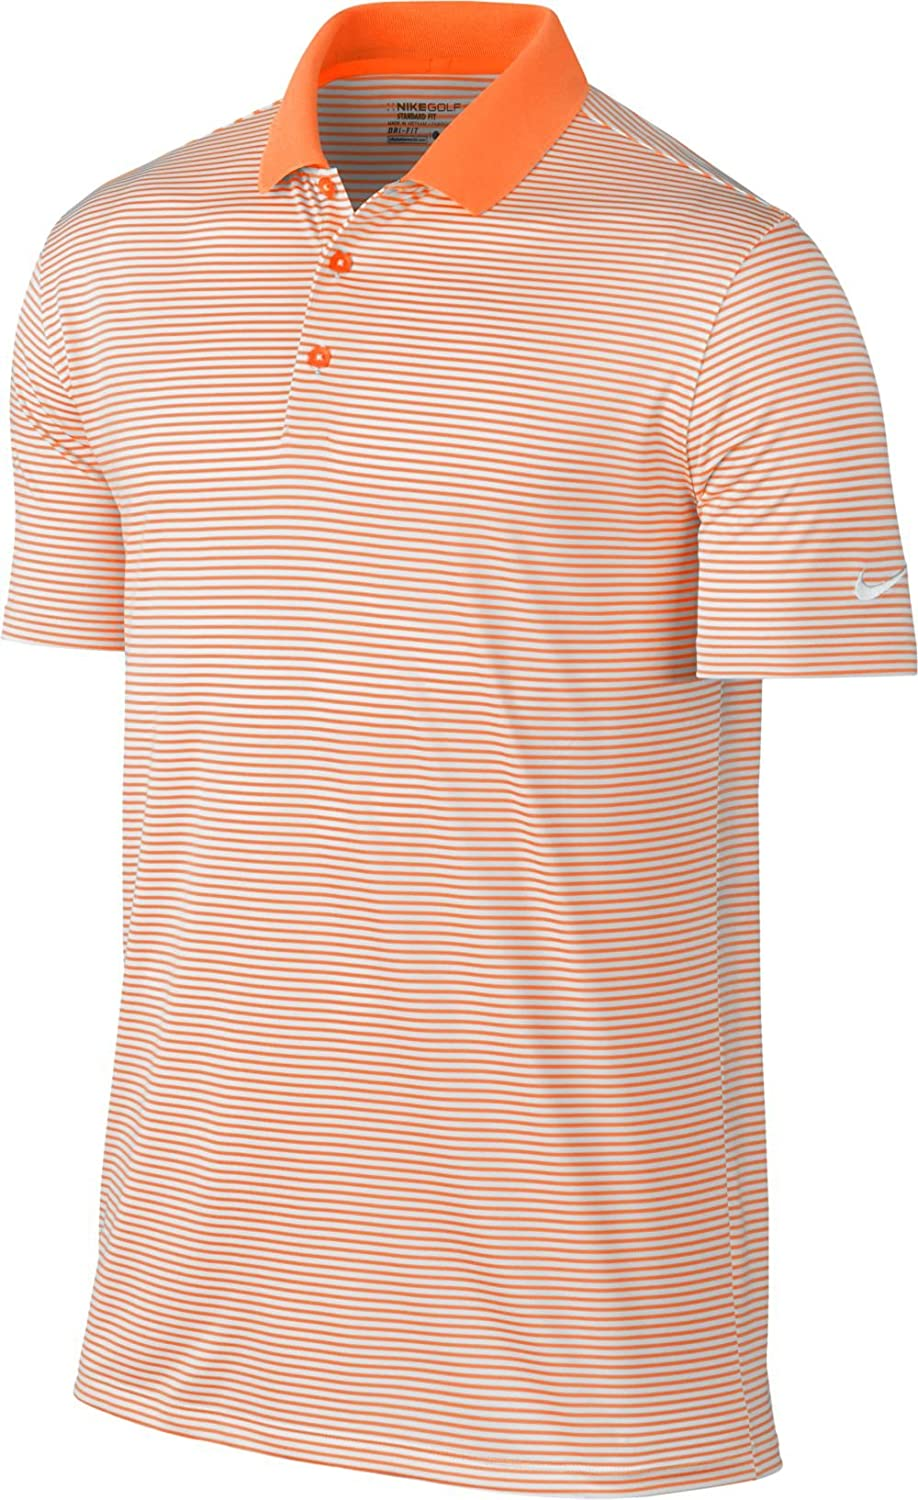 Nike Dri Fit Polo Shirts Wholesale Chad Crowley Productions